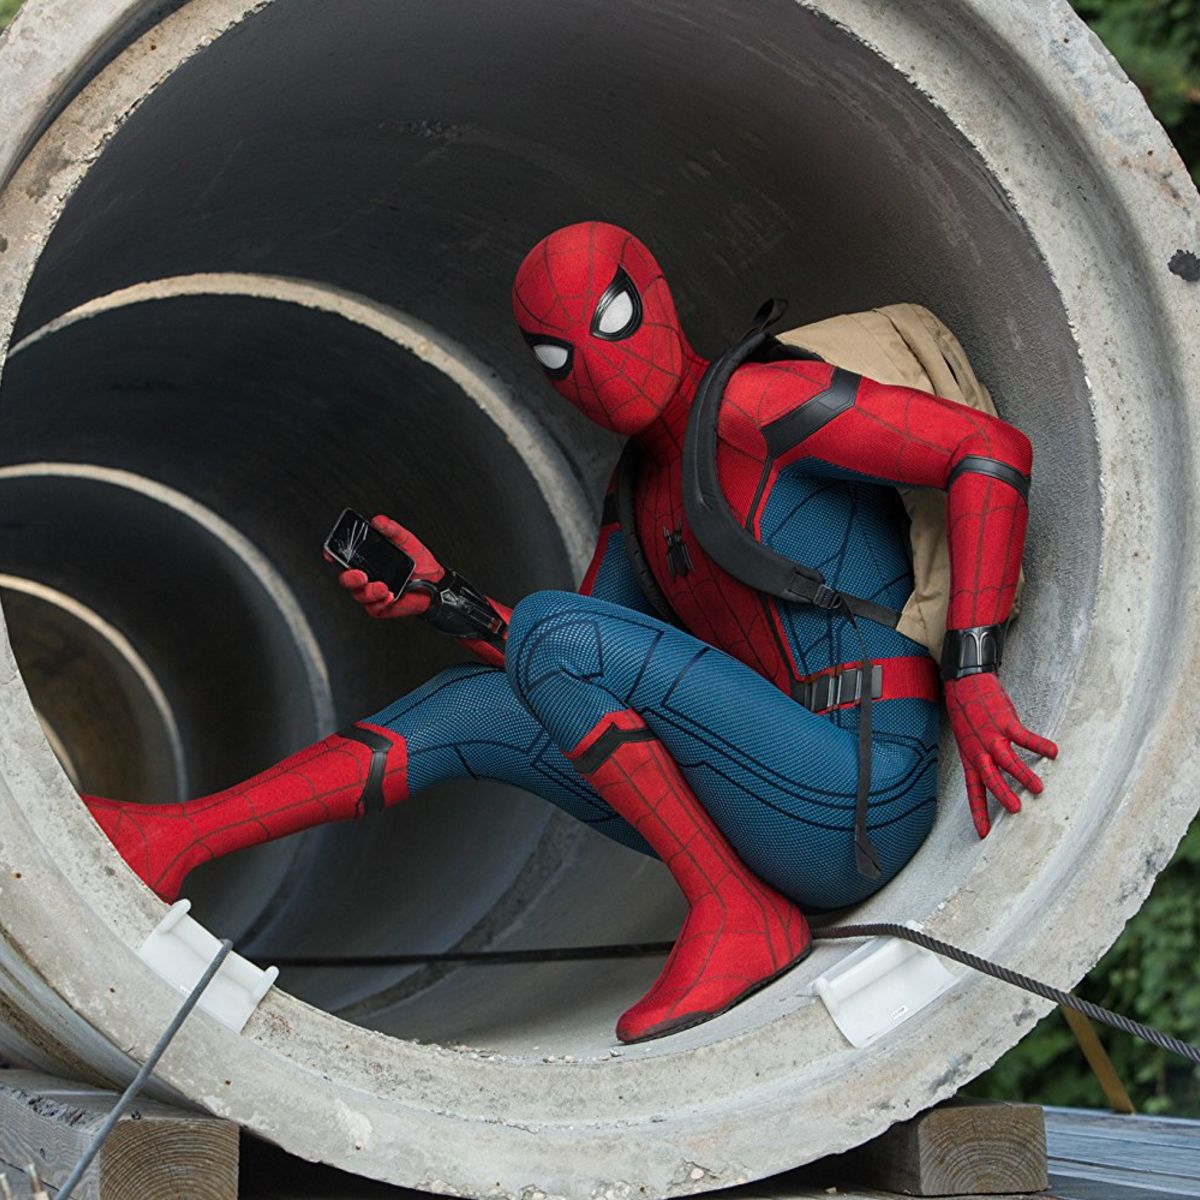 spider_man_homecoming_10.jpg